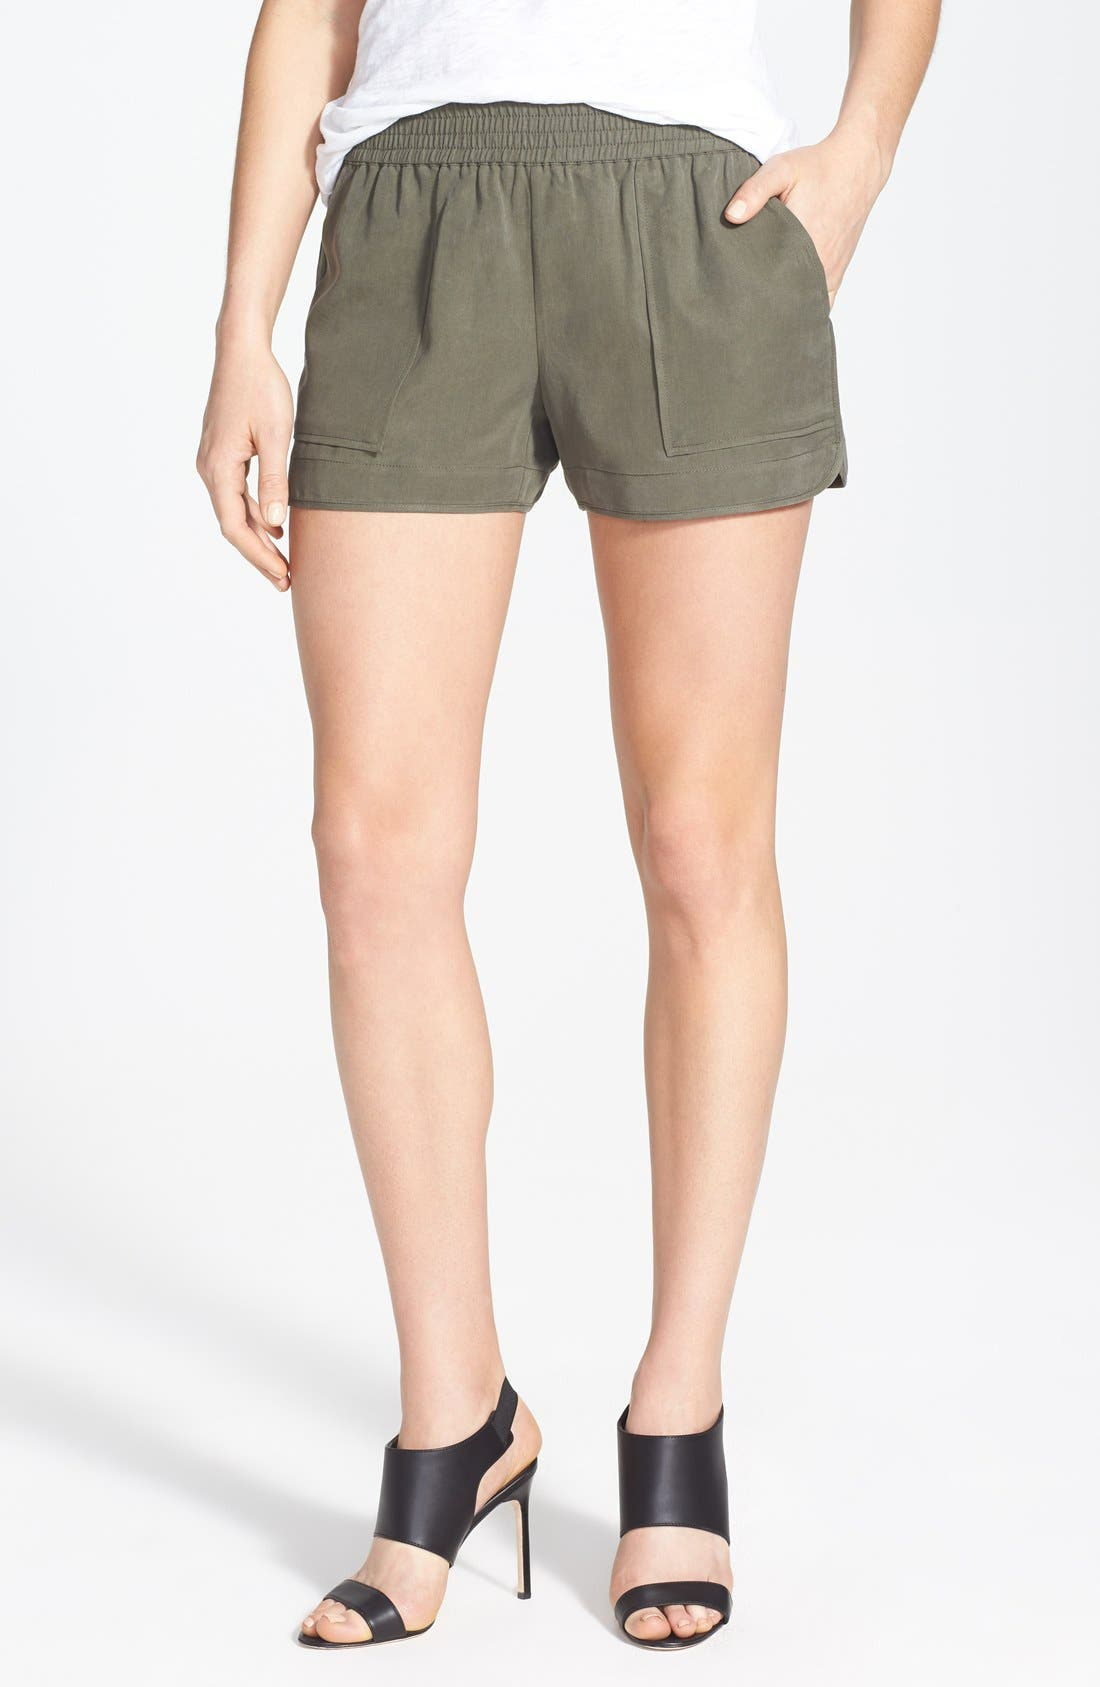 Beso Woven Shorts,                             Main thumbnail 1, color,                             Fatigue